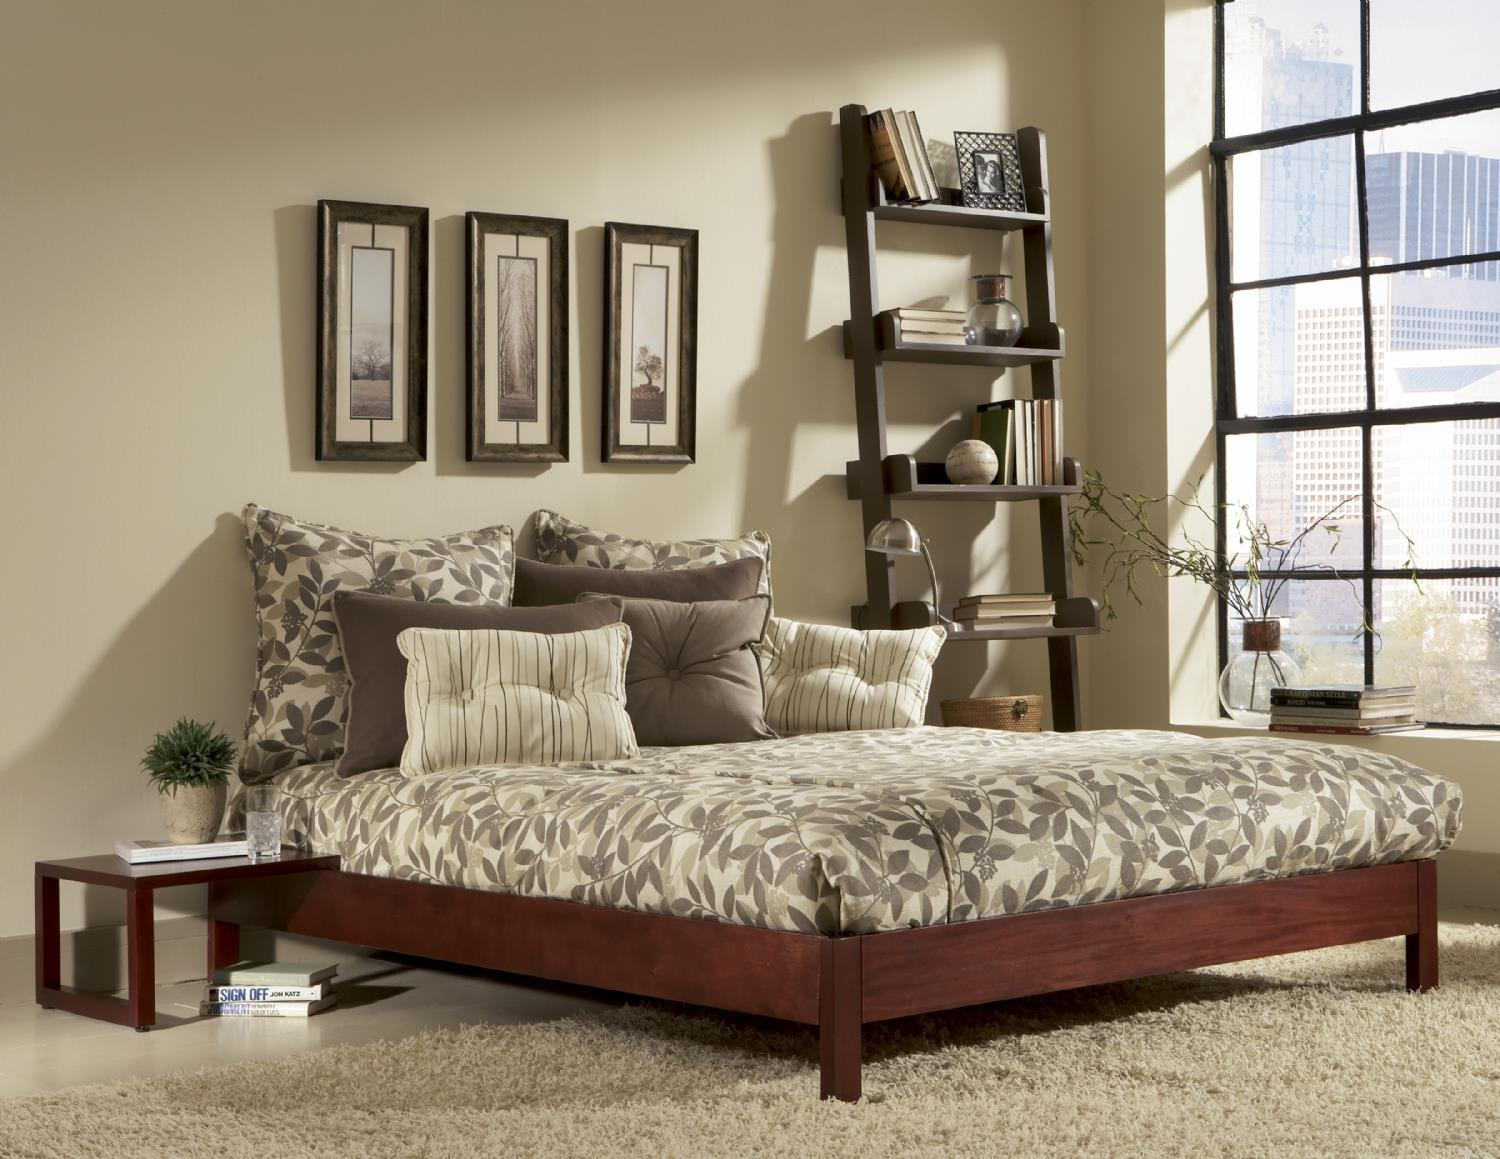 Fashion Bed Group Murray Cal King Bed - Item Number: D56111215